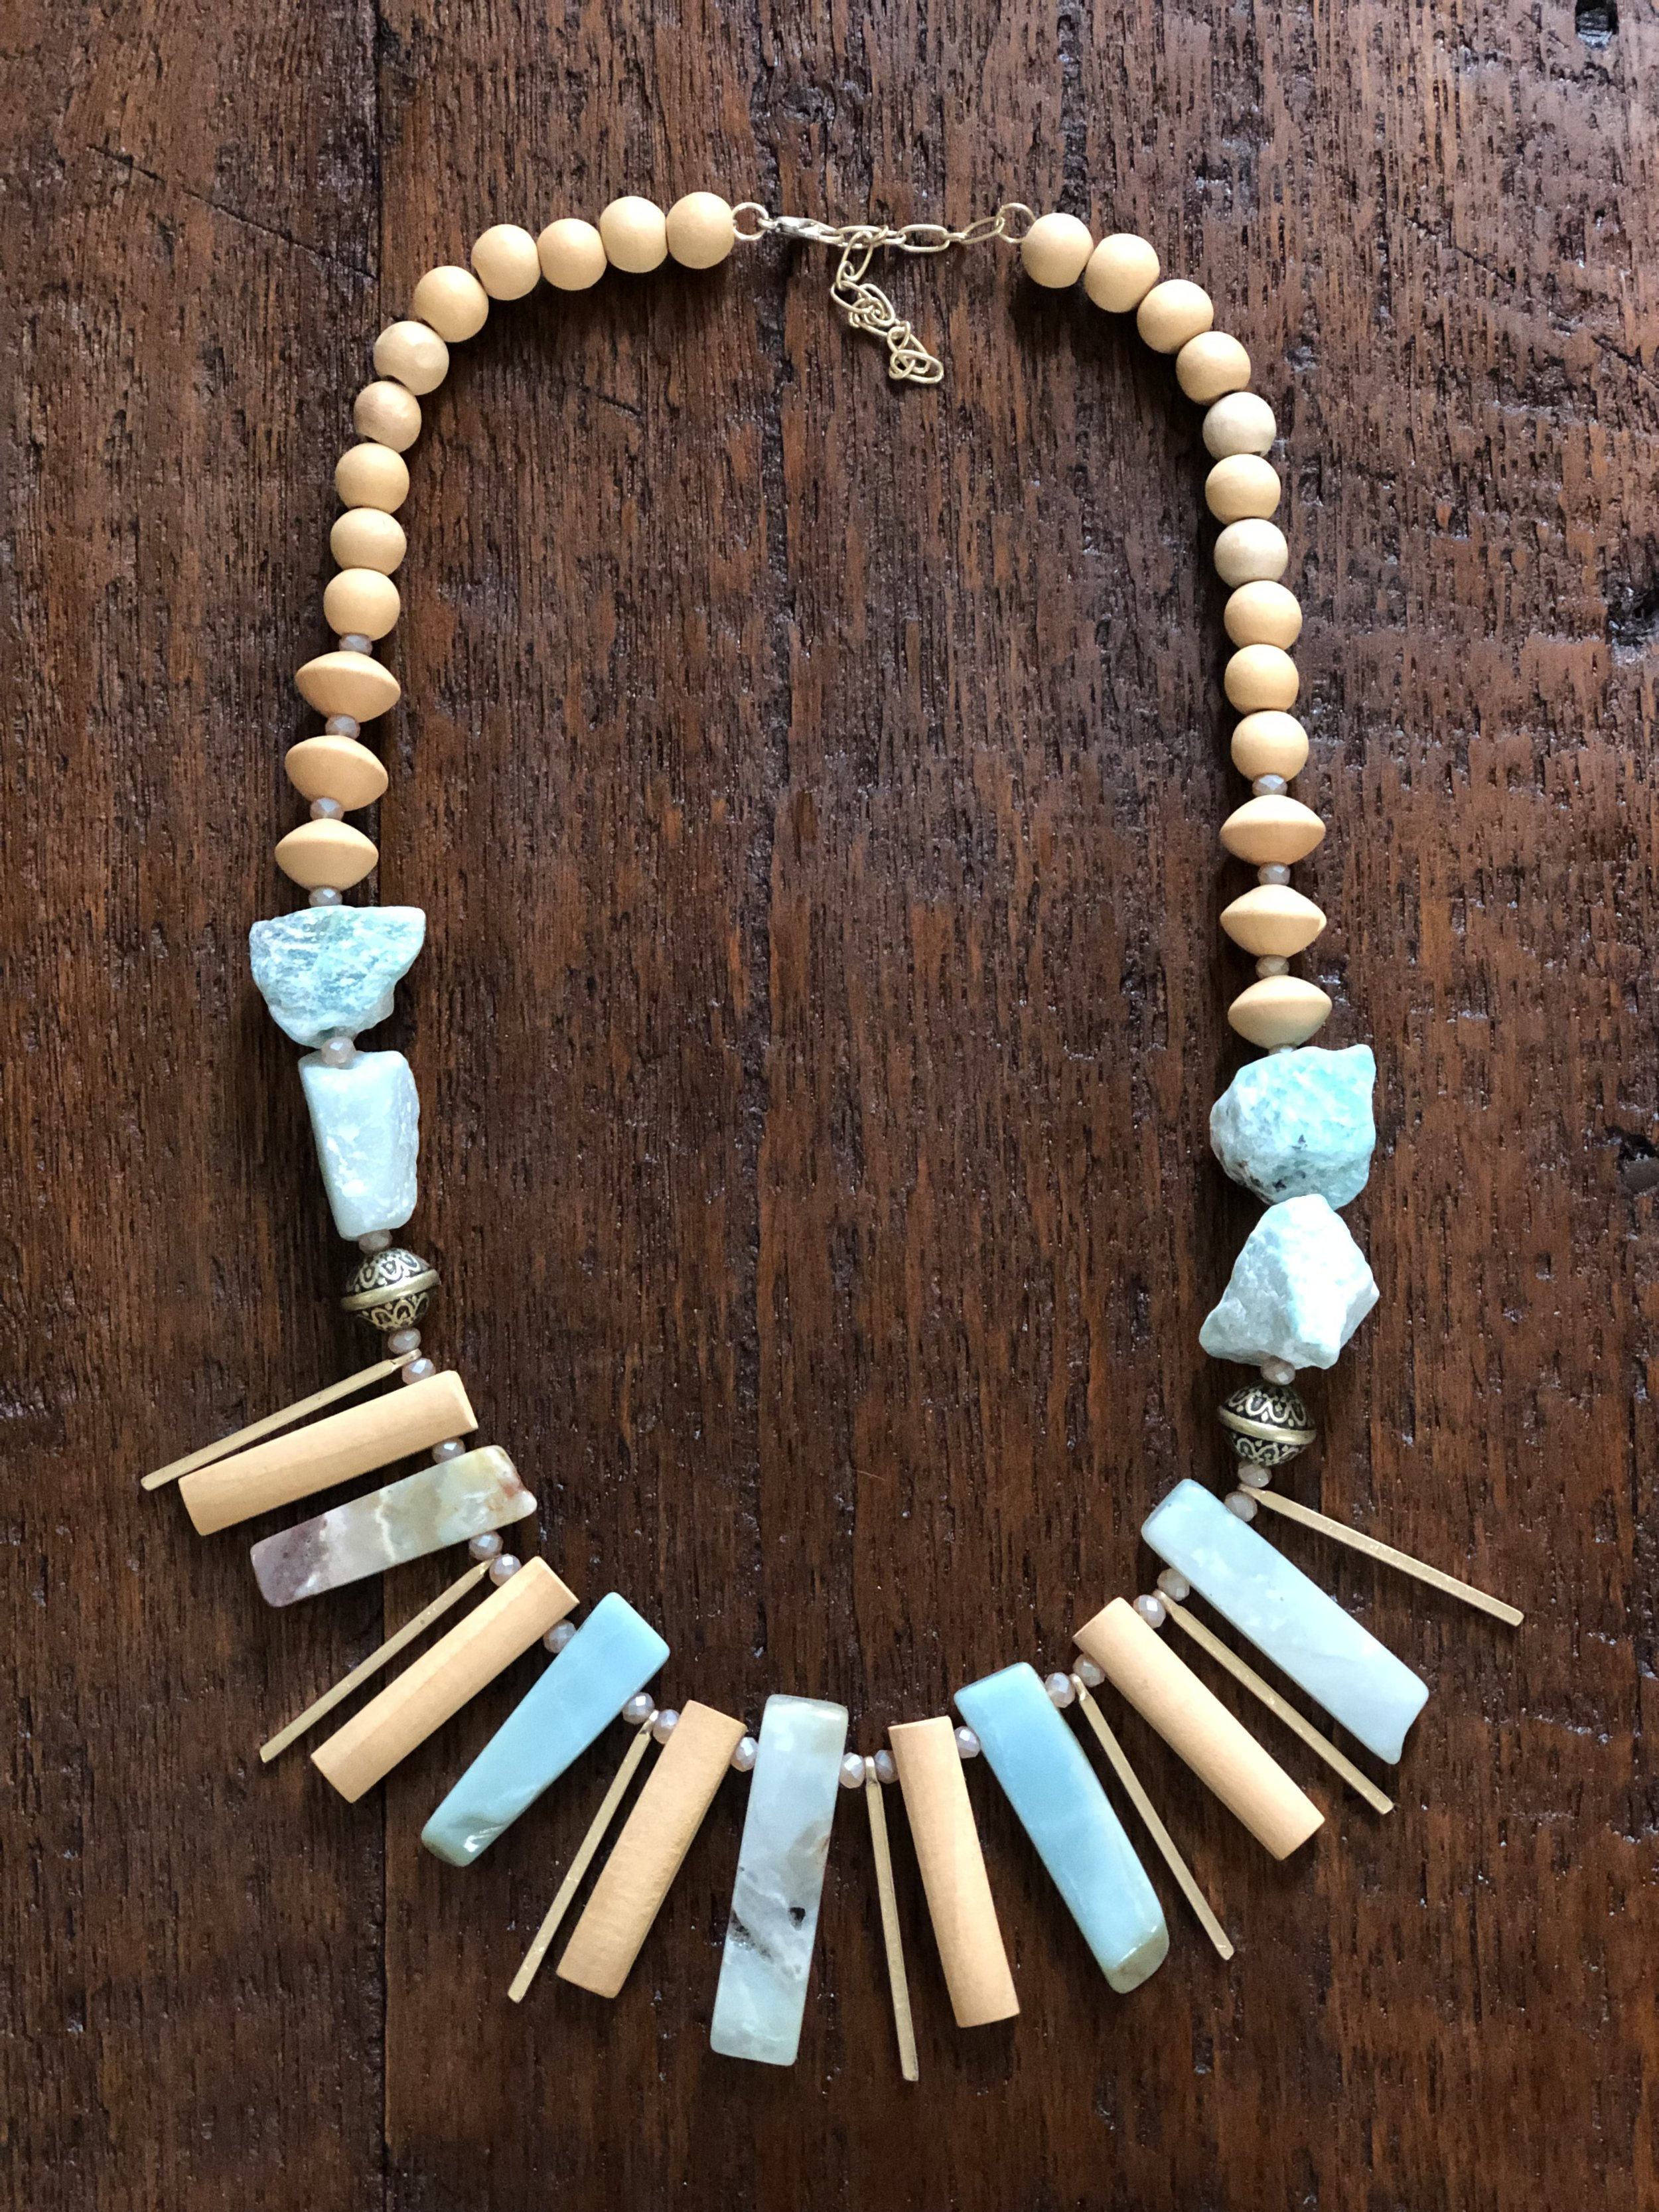 Woodstone Statement Necklace - $27.99